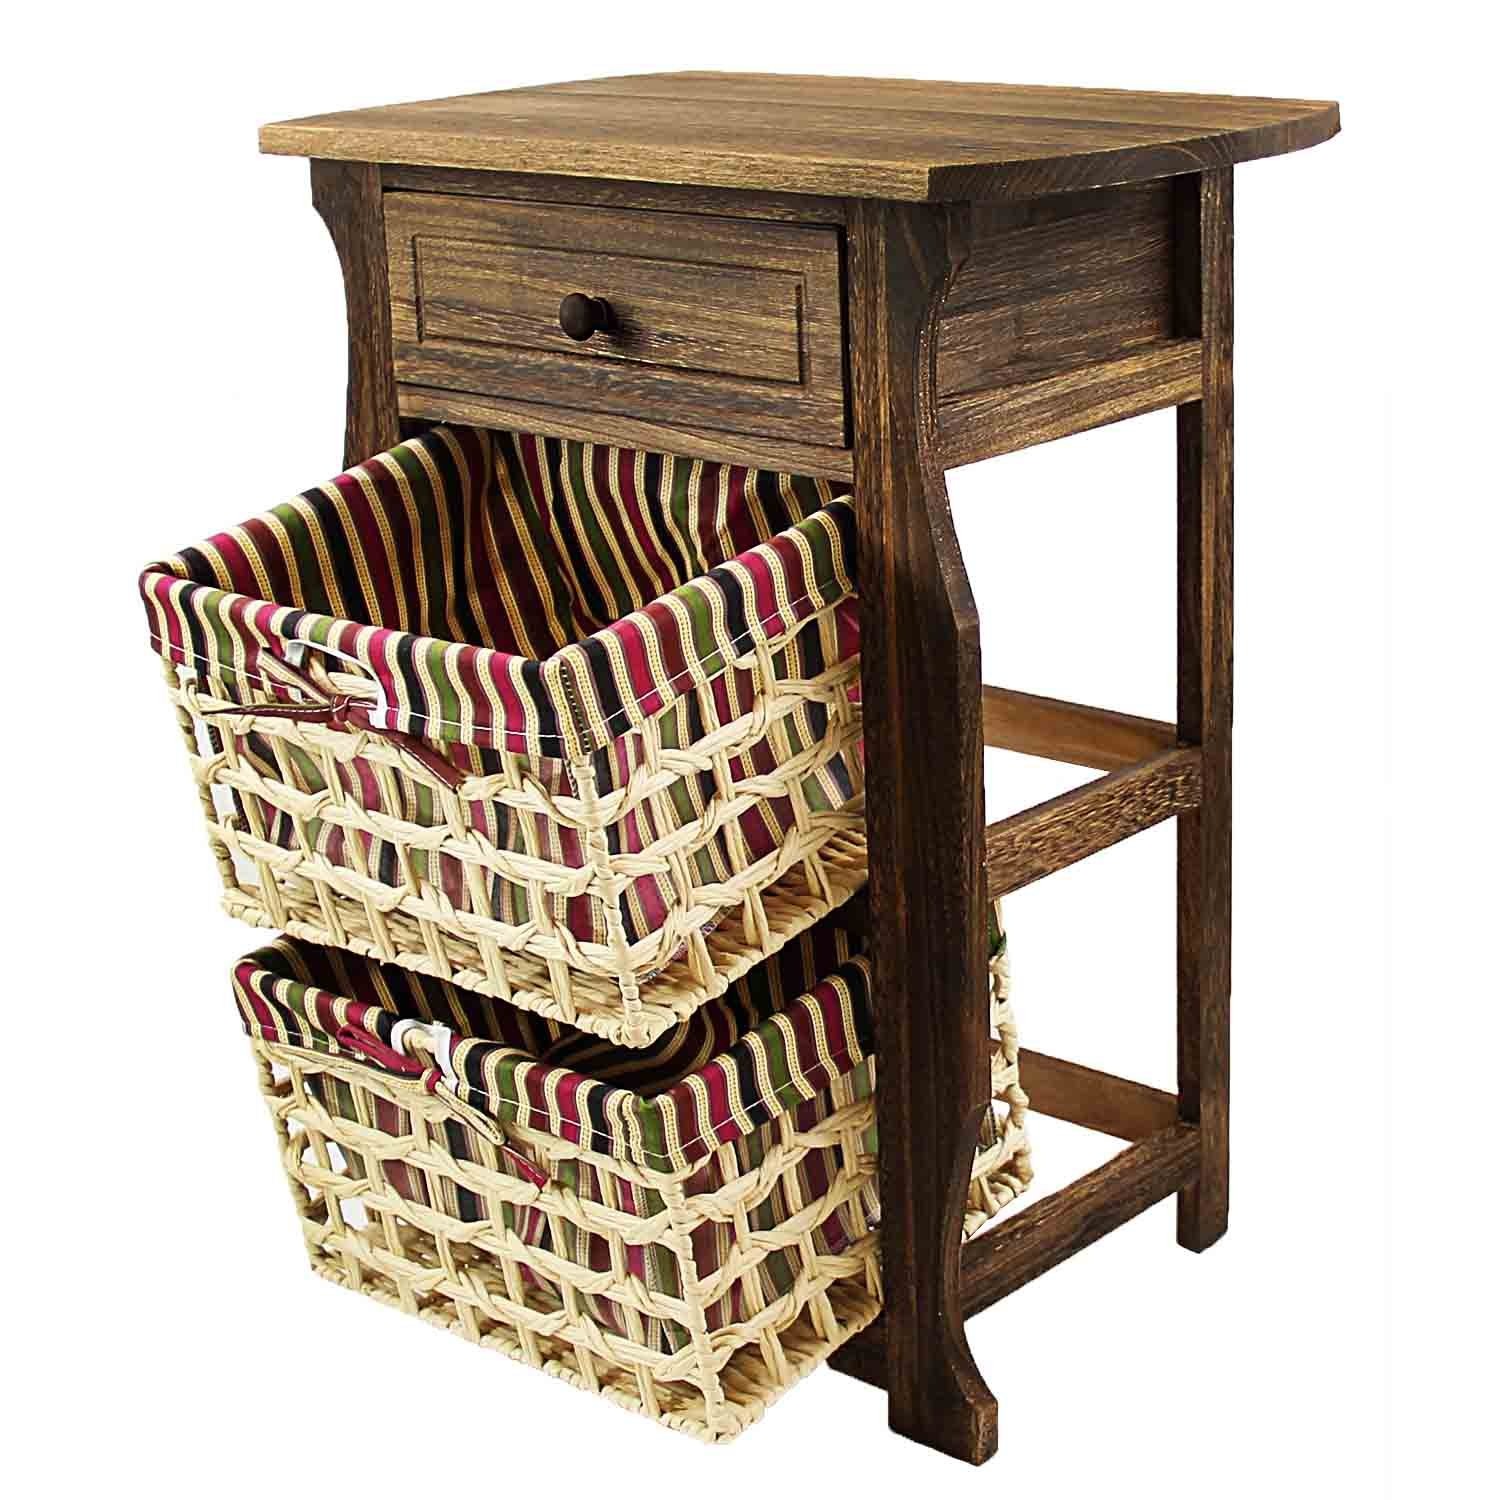 Jerry & Maggie - Nightstand Classic Countryside Dark Brown Wood - Night Stand Storage bedside table with 2 Vine Weaved Basket & 1 Drawer Real Natural Indus Wood Texture